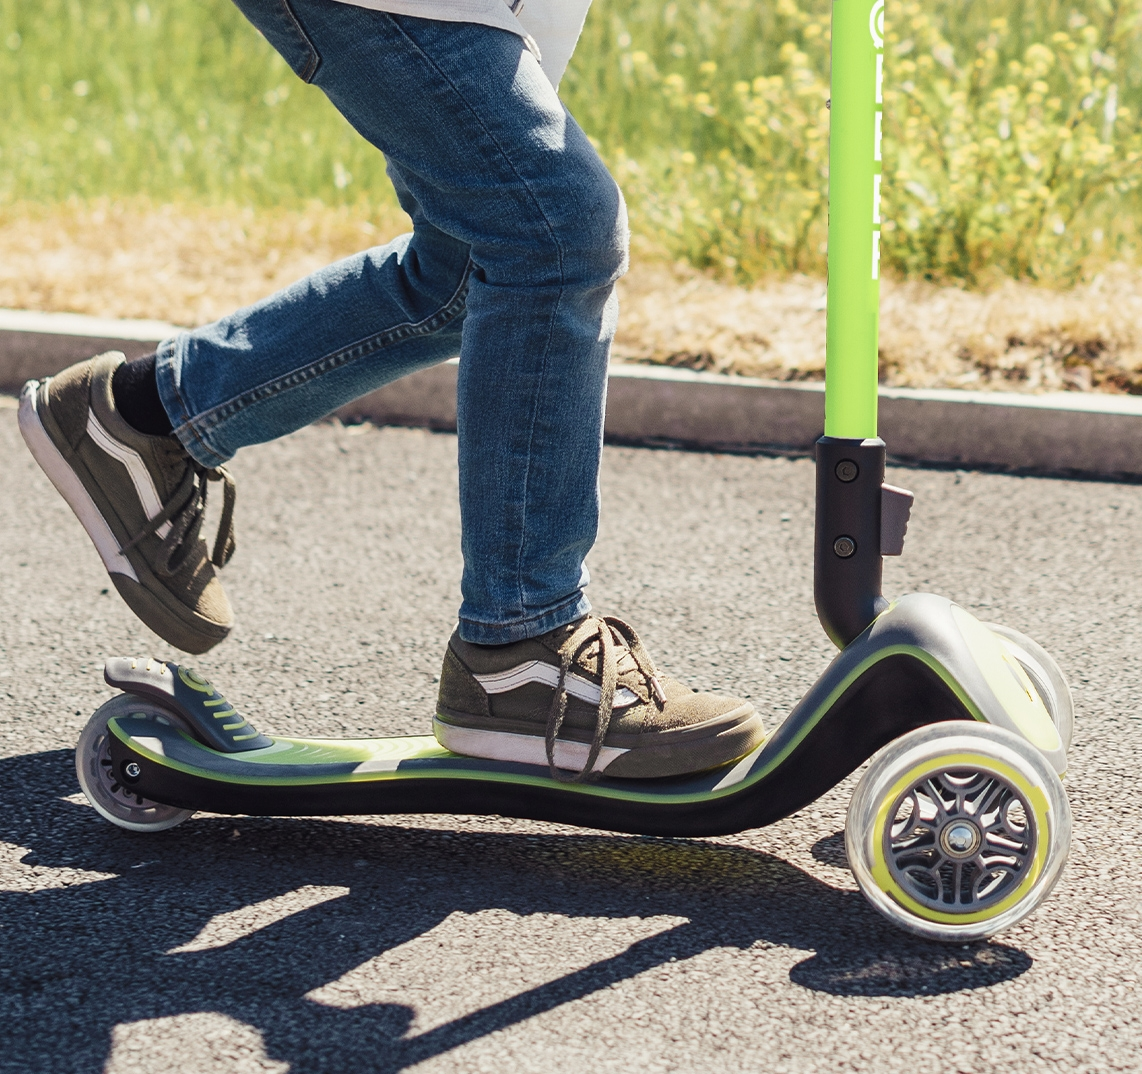 scooter for kids with a wide deck